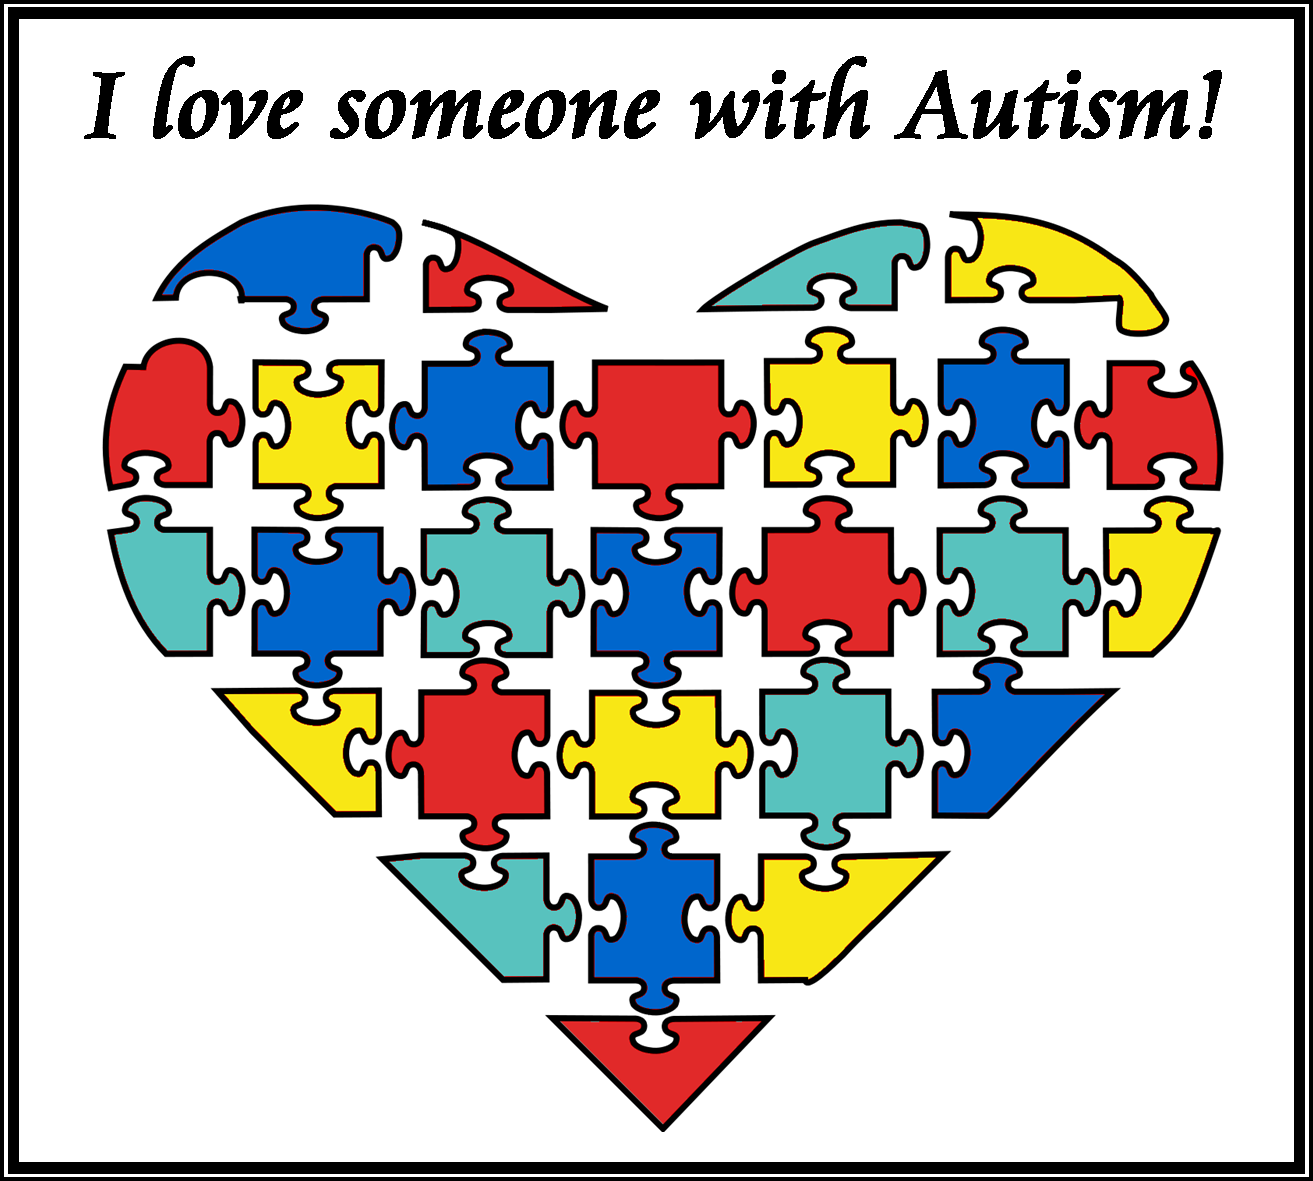 http://autismstory.files.wordpress.com/2012/08/autism.png